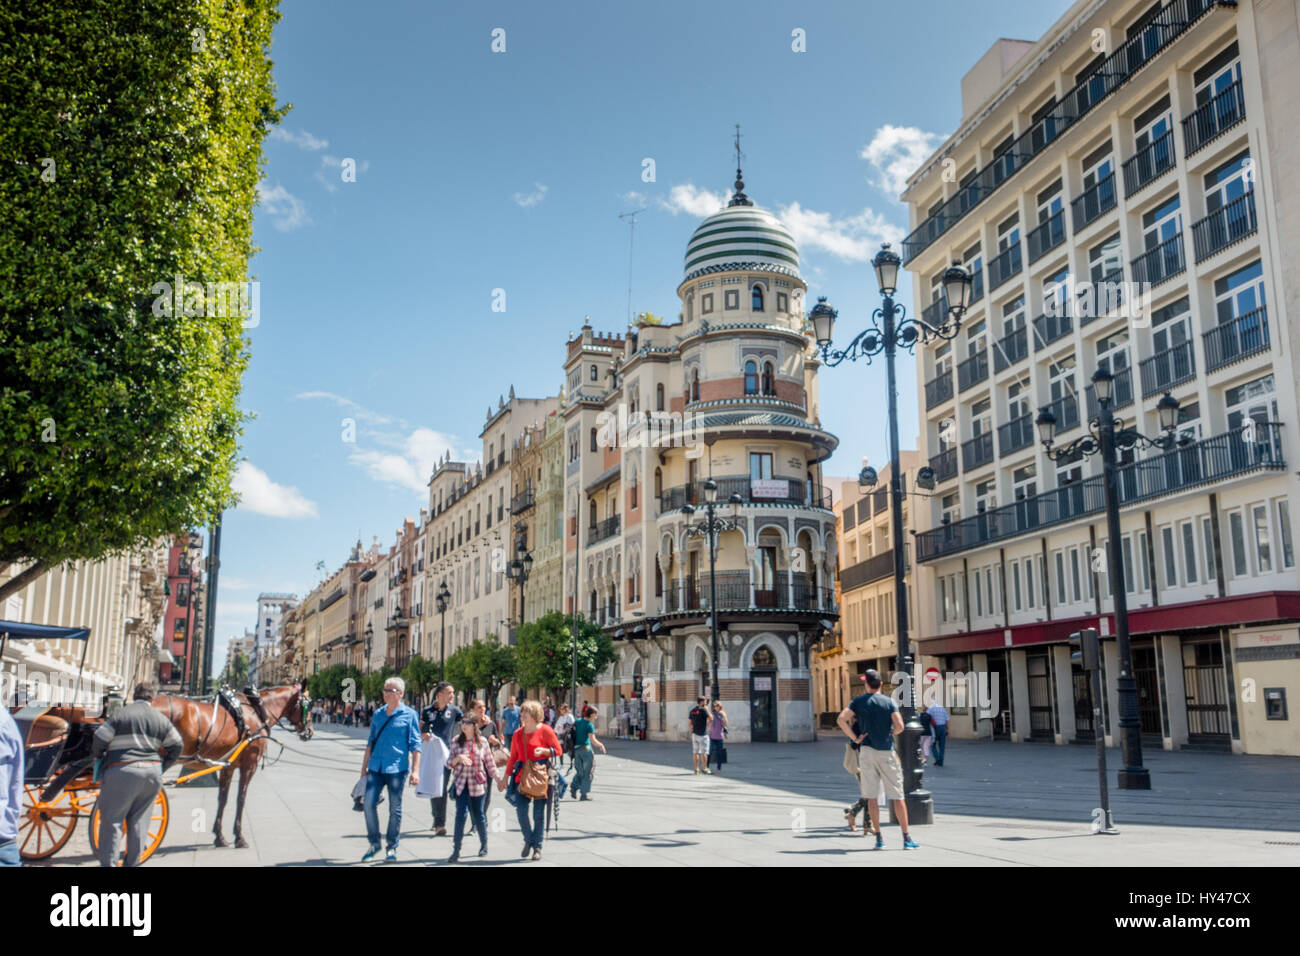 SEVILLE, SPAIN - JUNE 1, 2016: People and buildings on a beautiful day in Seville, Spain. Stock Photo